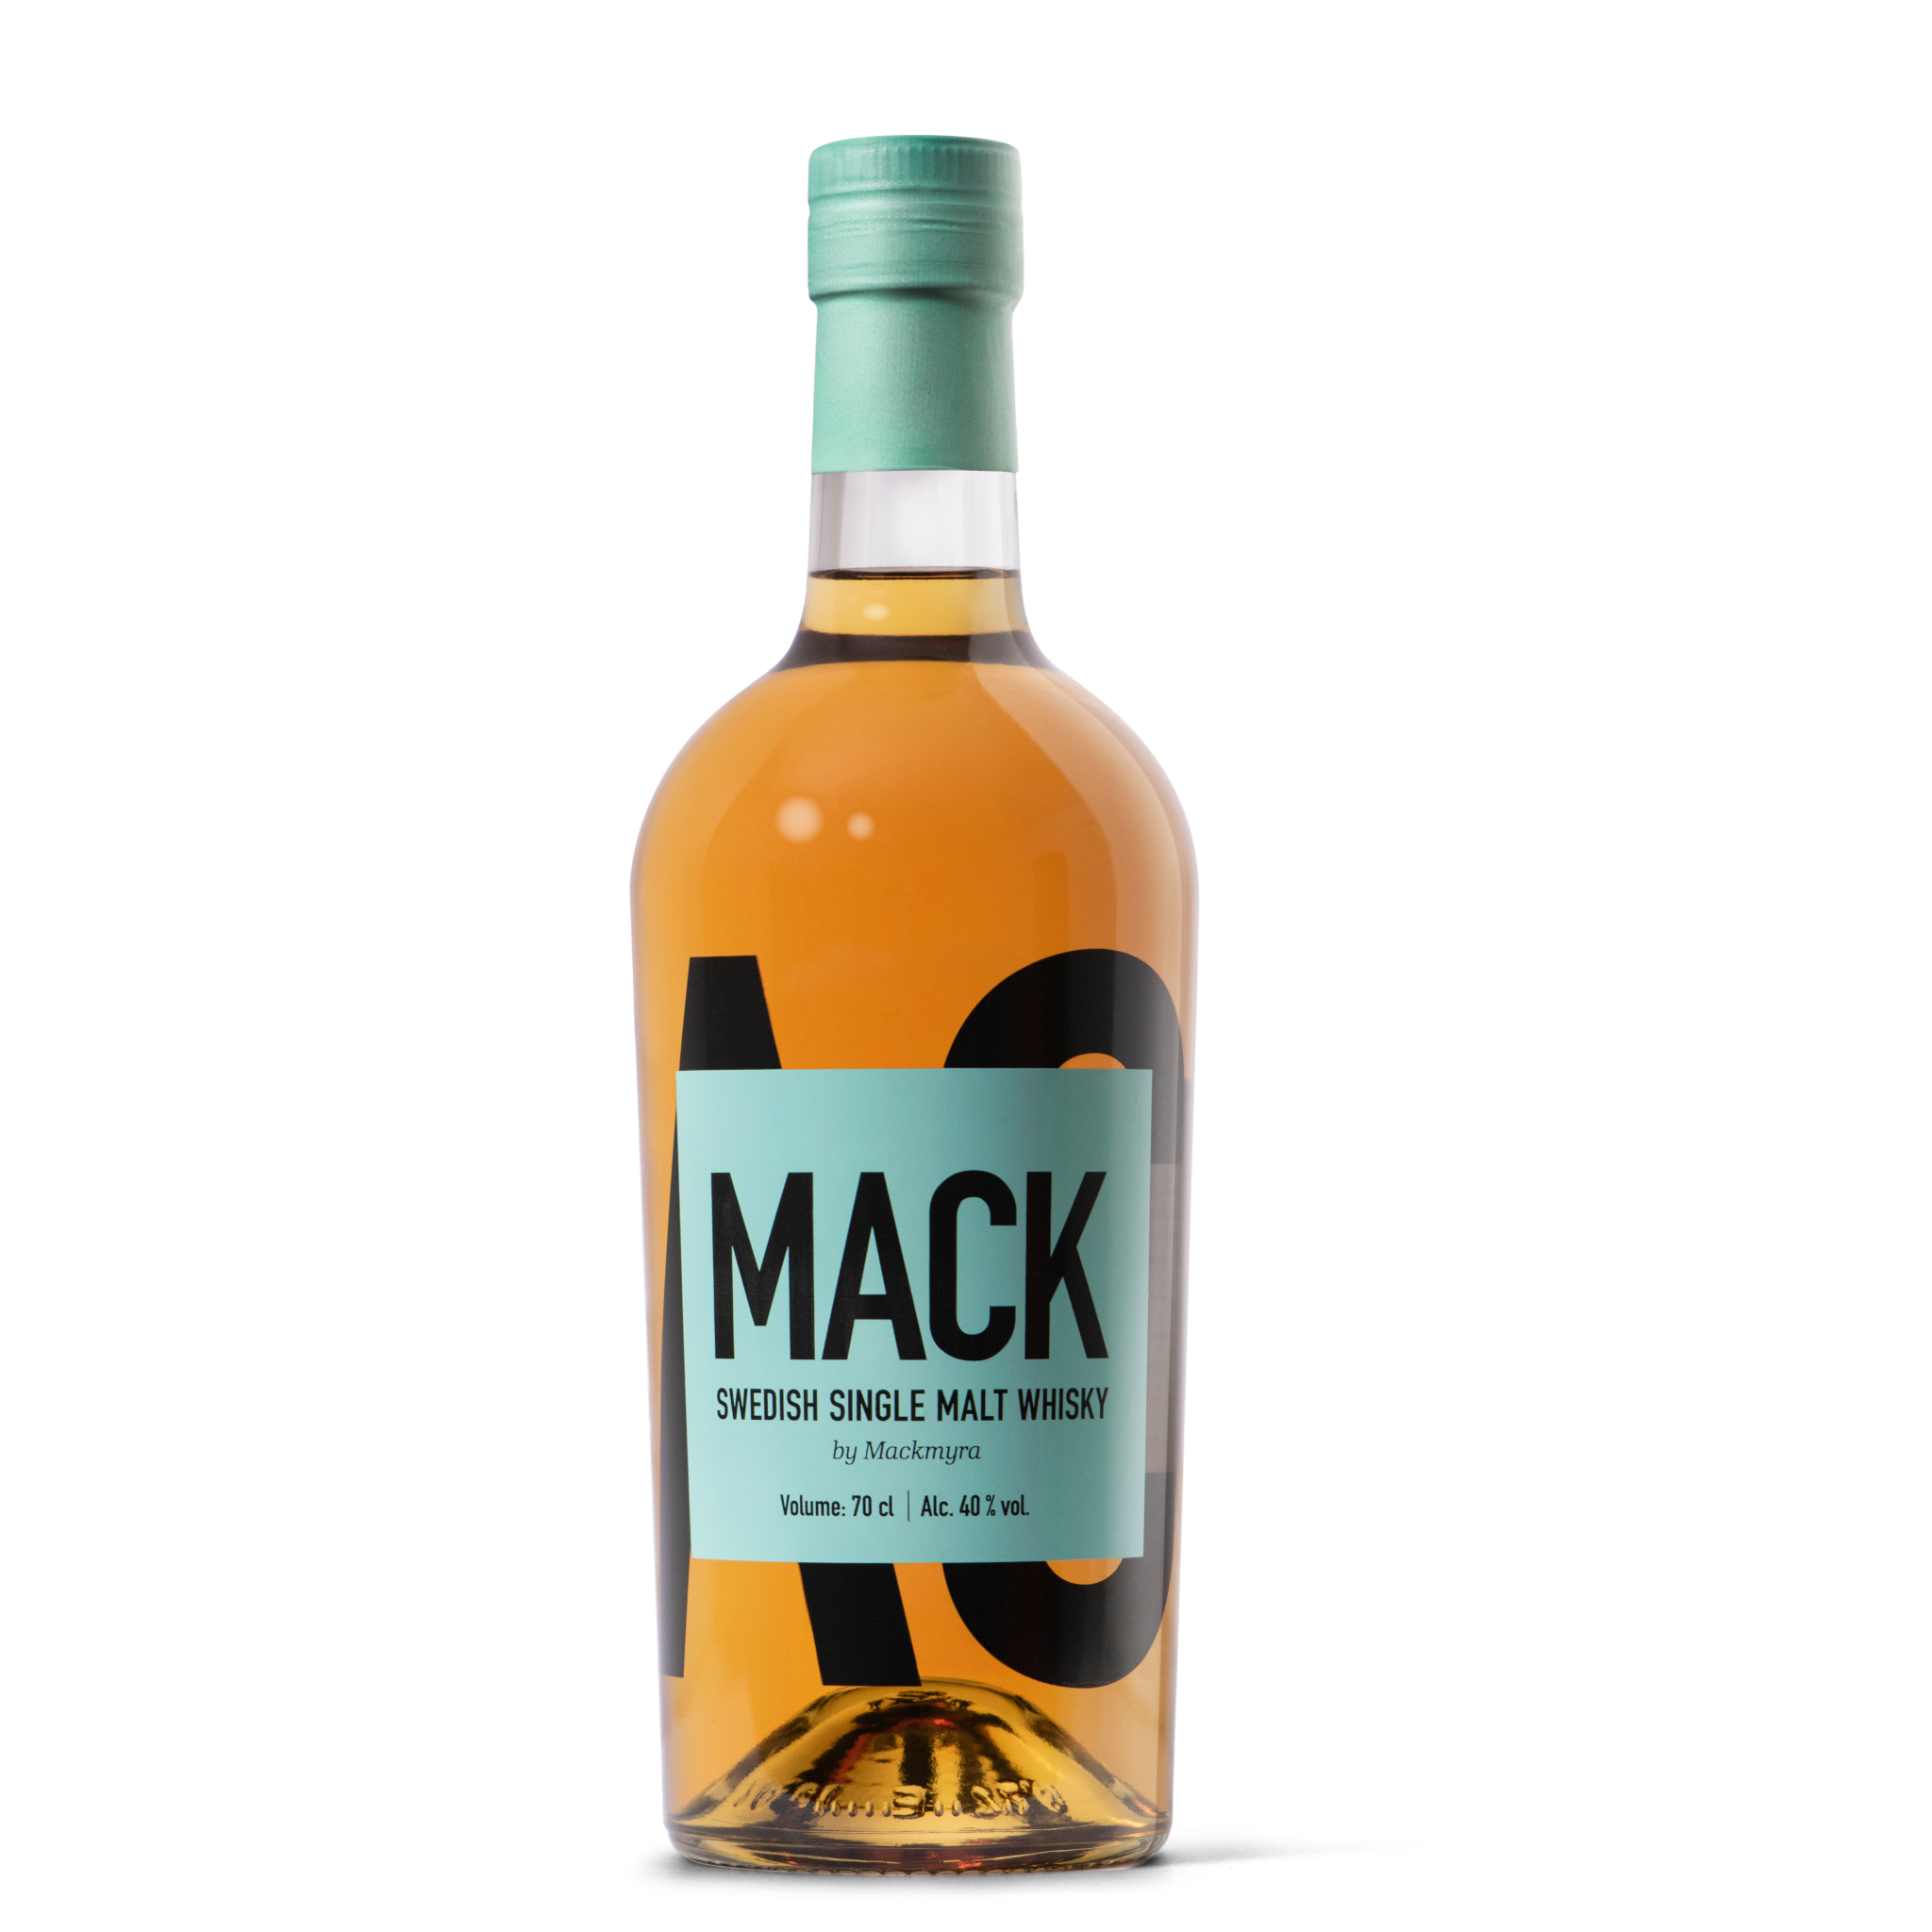 Mack by Mackmyra